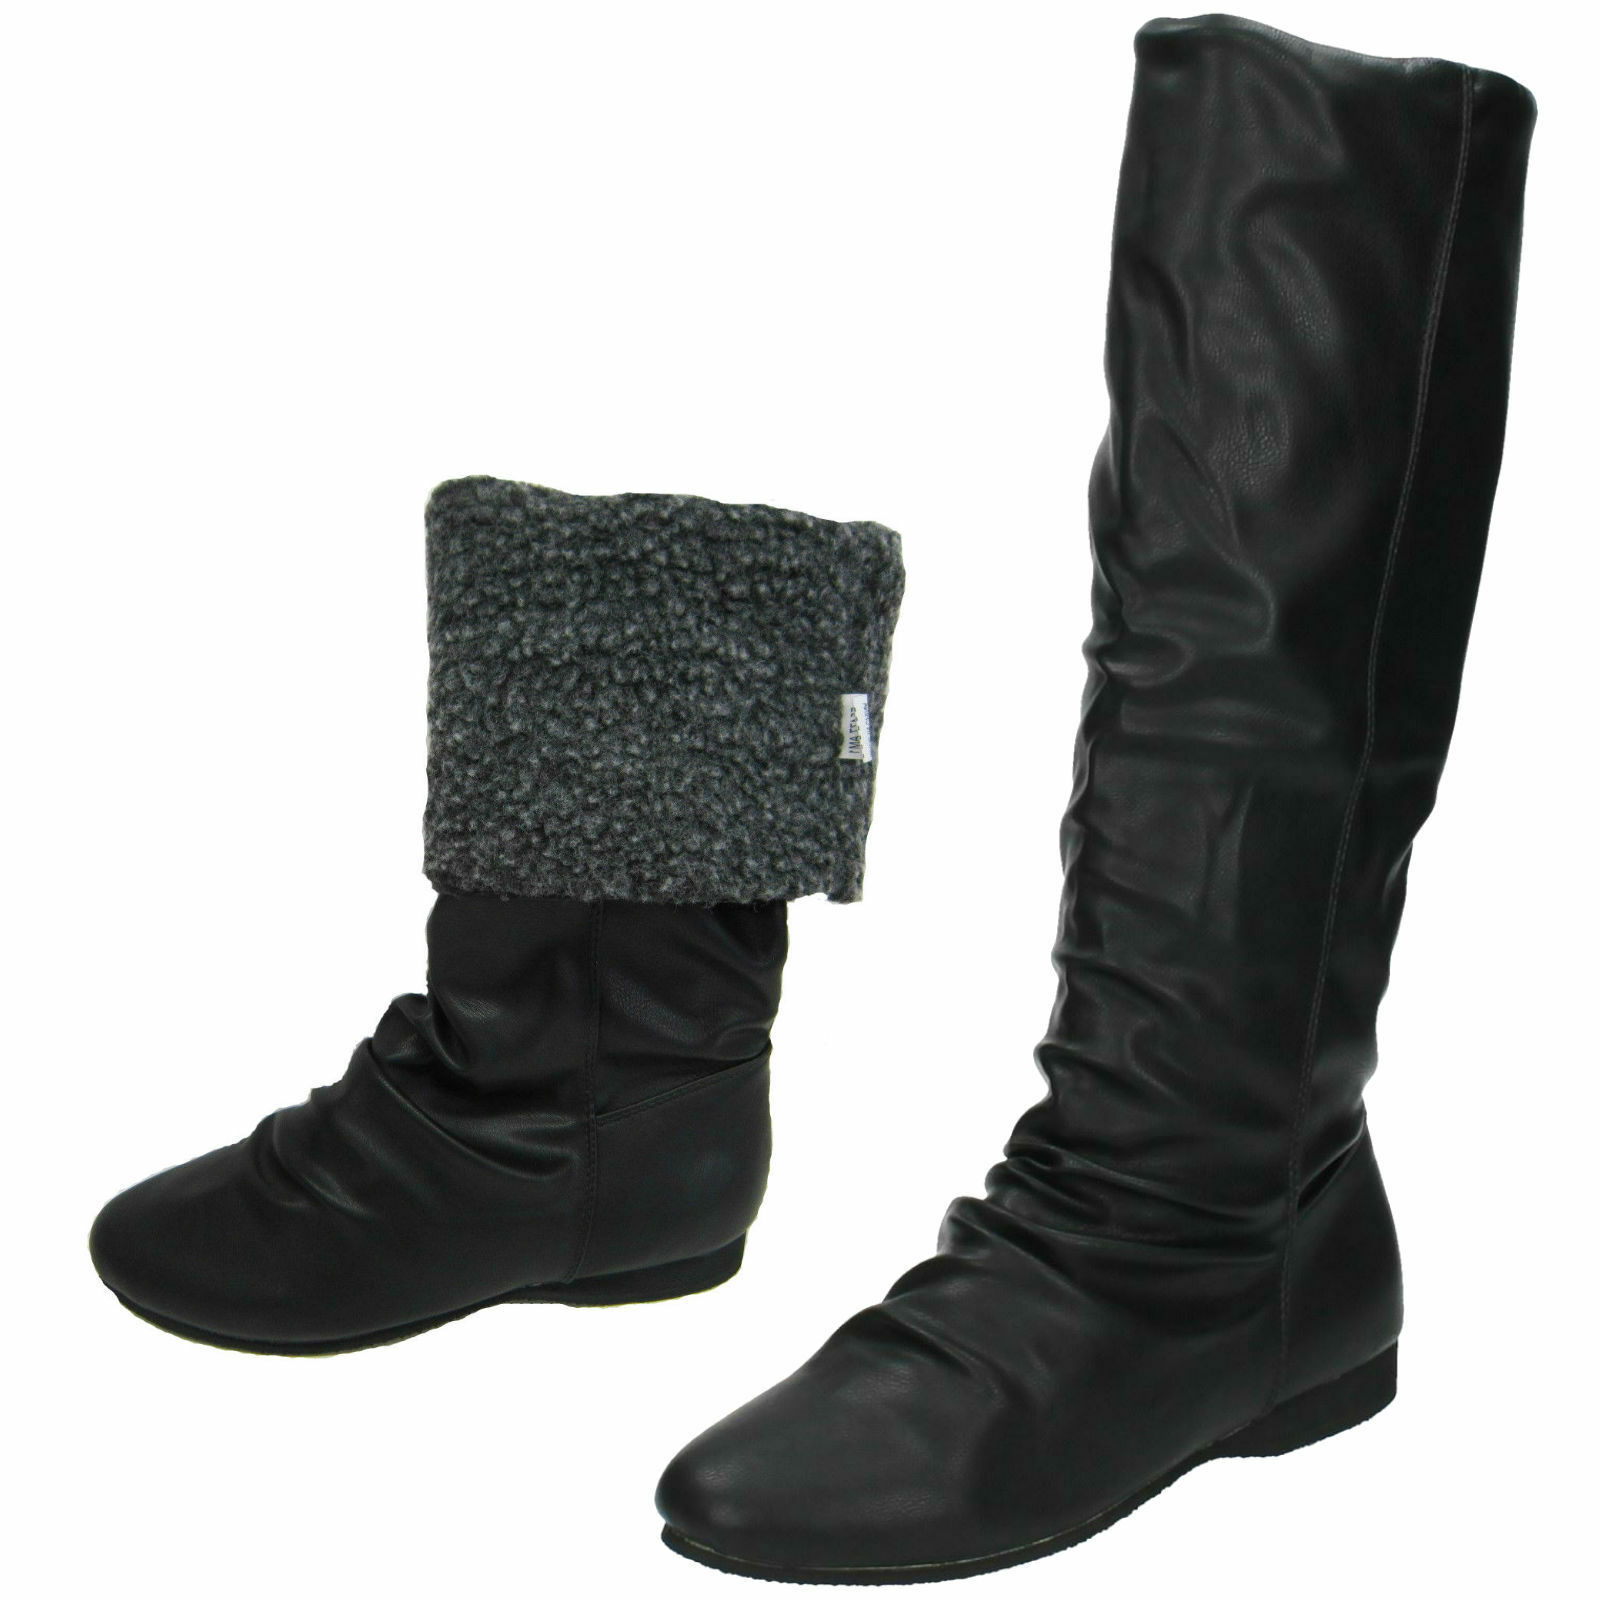 SALE LADIES SPOT ON F5477 PULL ON FUR LINED CASUAL FLAT LONG KNEE WINTER BOOTS